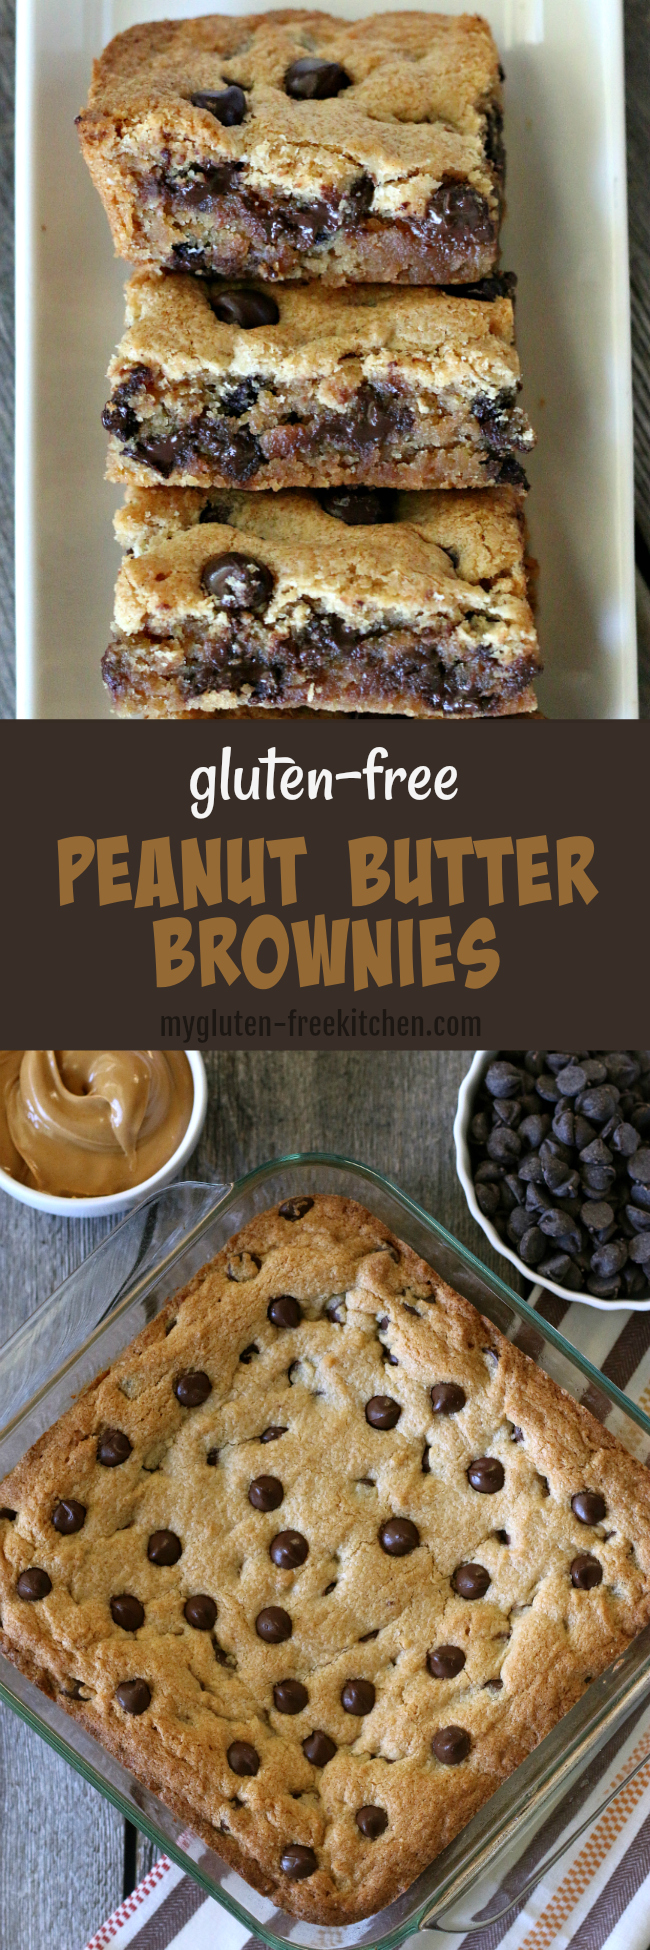 Gluten-free Peanut Butter Brownies Recipe. This is what I make when I'm craving dessert but want something super easy!